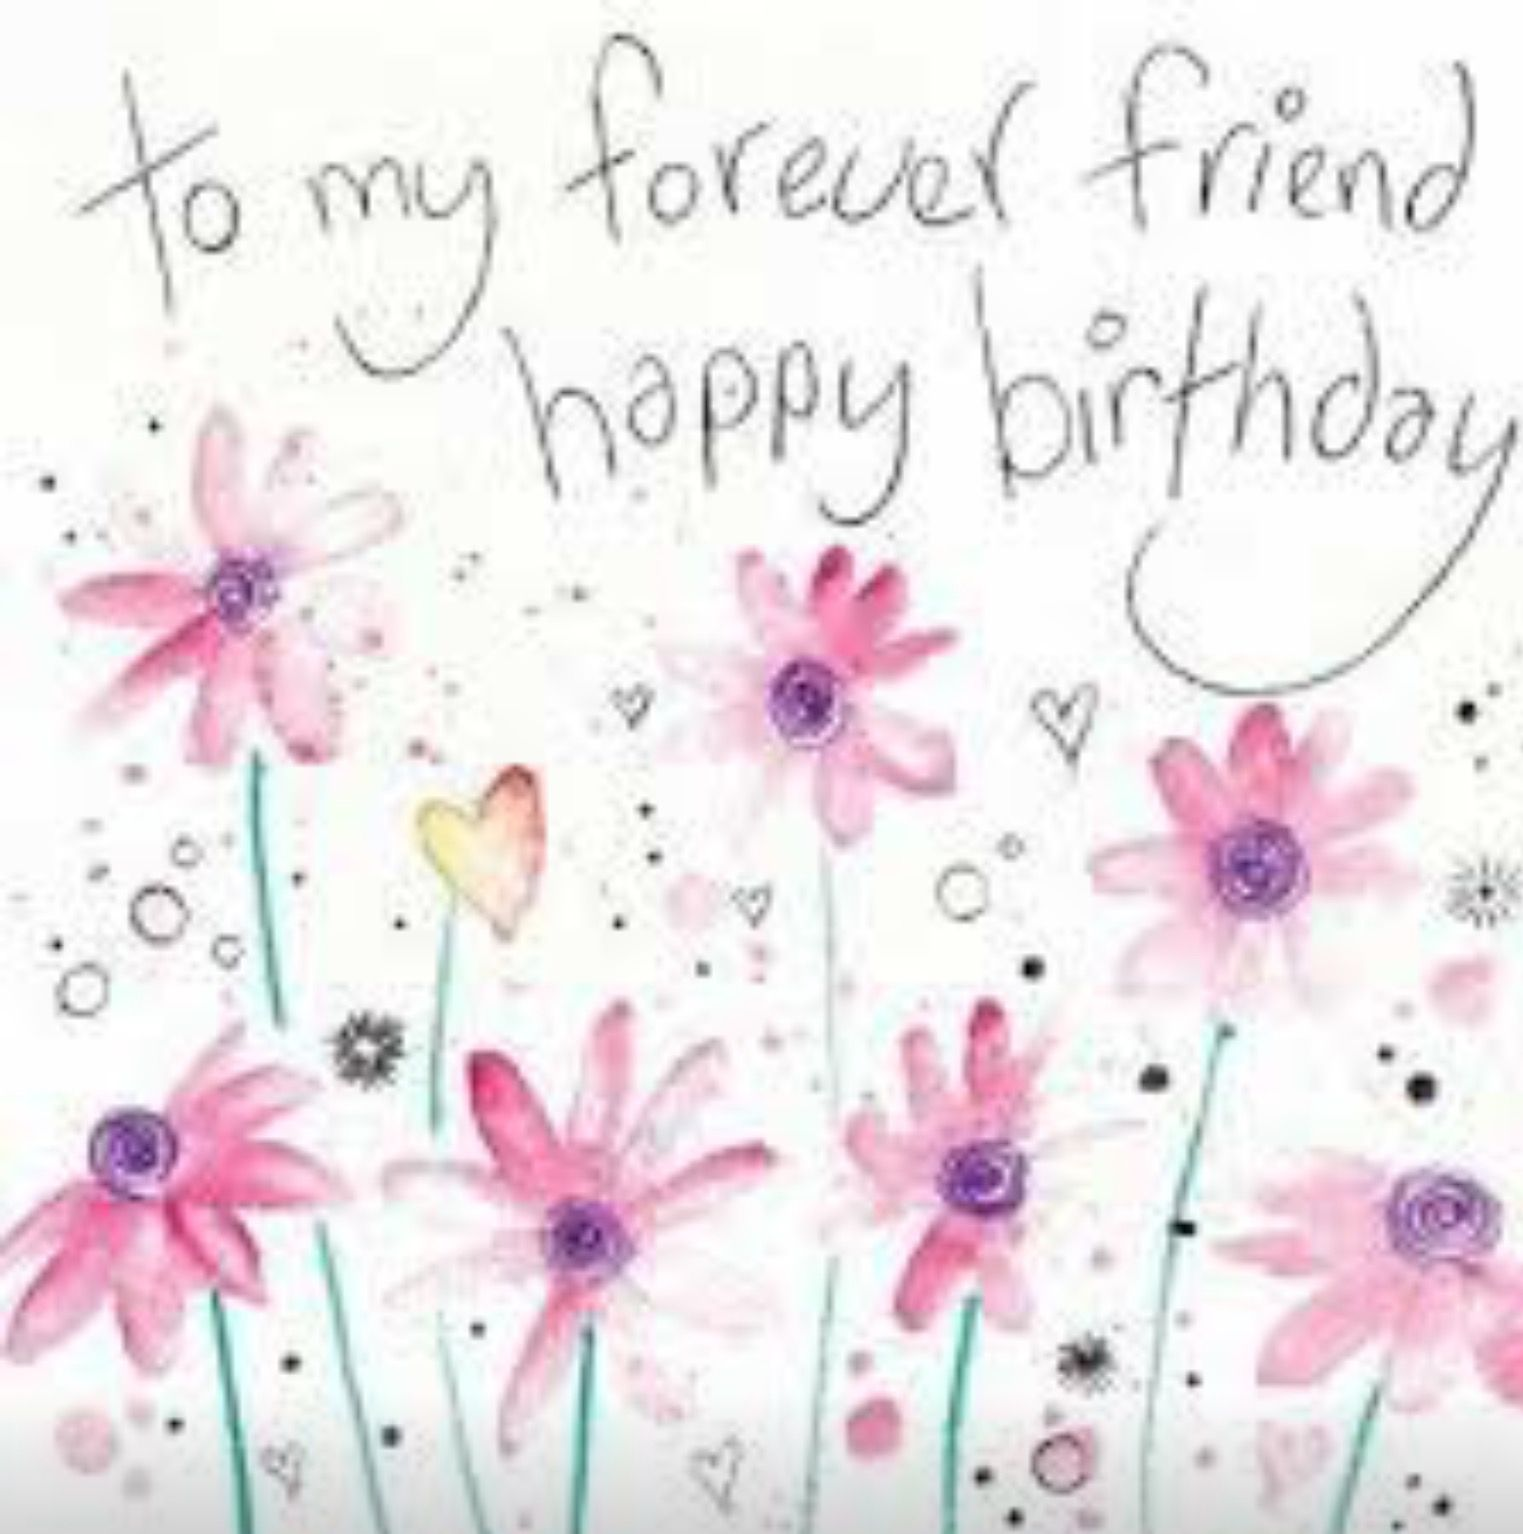 Forever friend birthday Happy birthday friend images